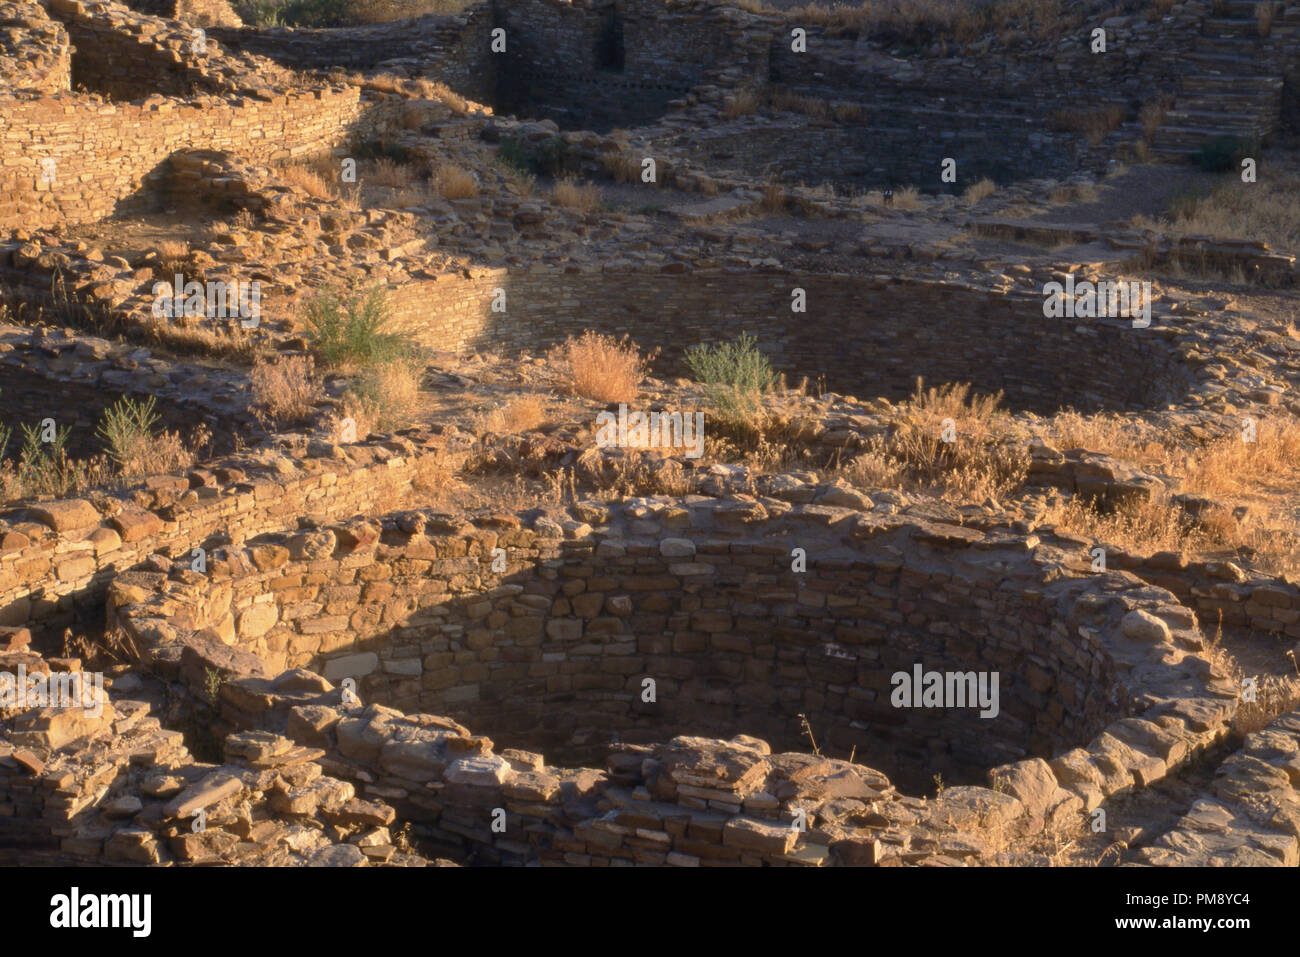 Anasazi kiva ruins of Pueblo del Arroyo, Chaco Canyon, New Mexico. Photograph - Stock Image